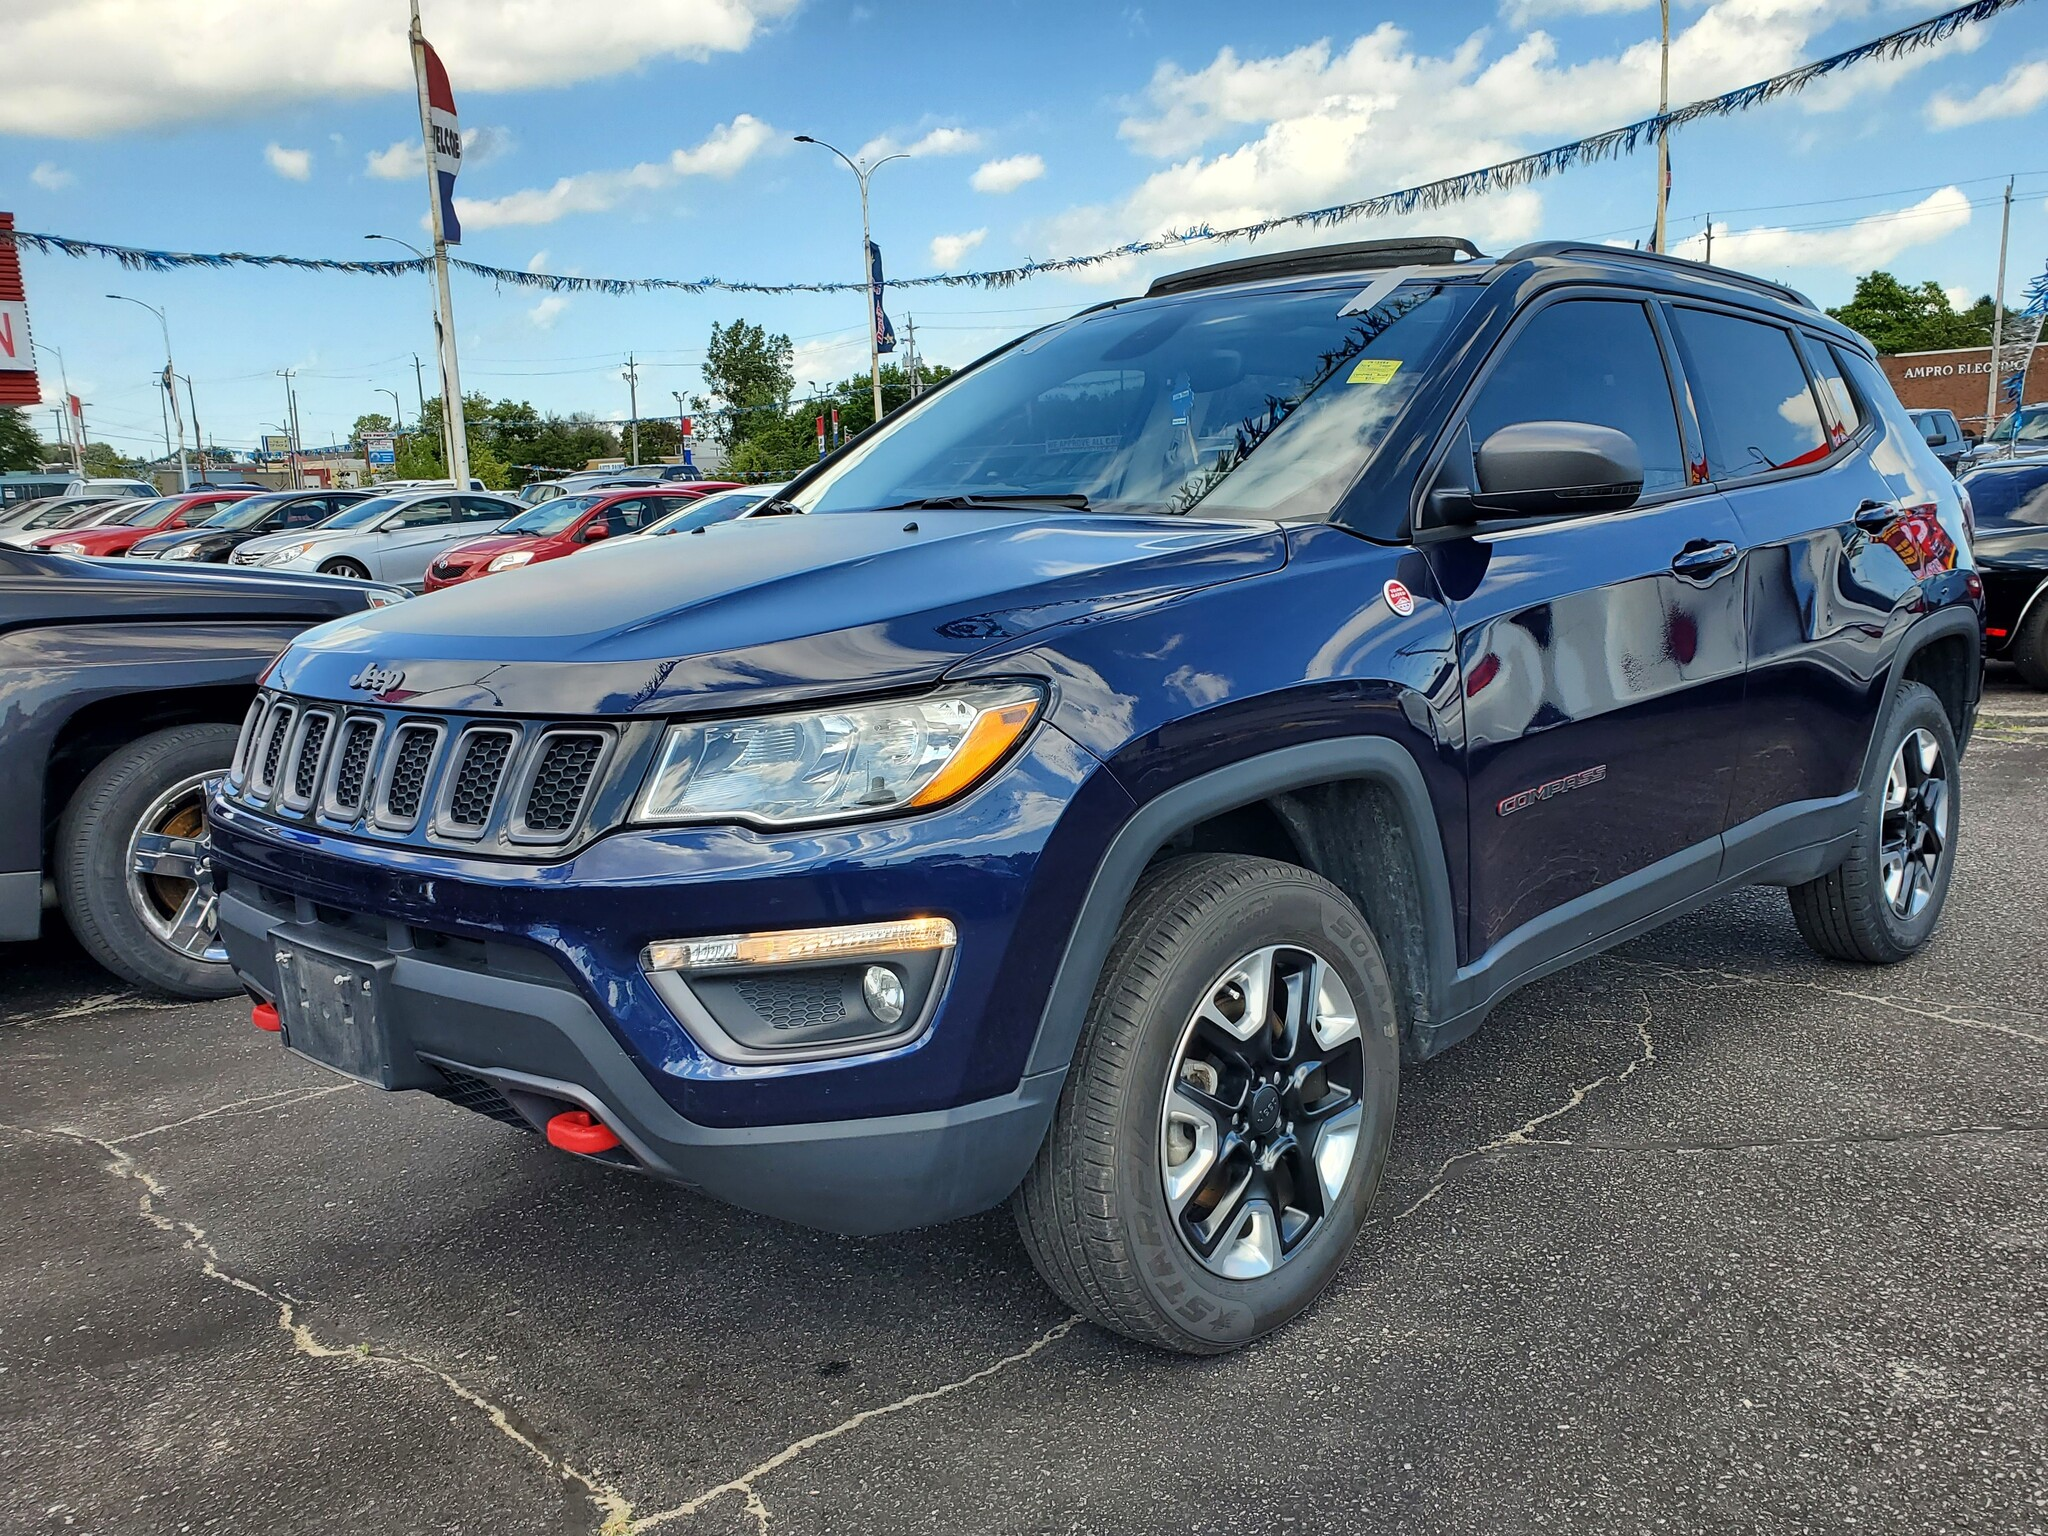 2018 Jeep Compass In London Ontario 5 Star Dealers Inc 3c4njddb5jt303558